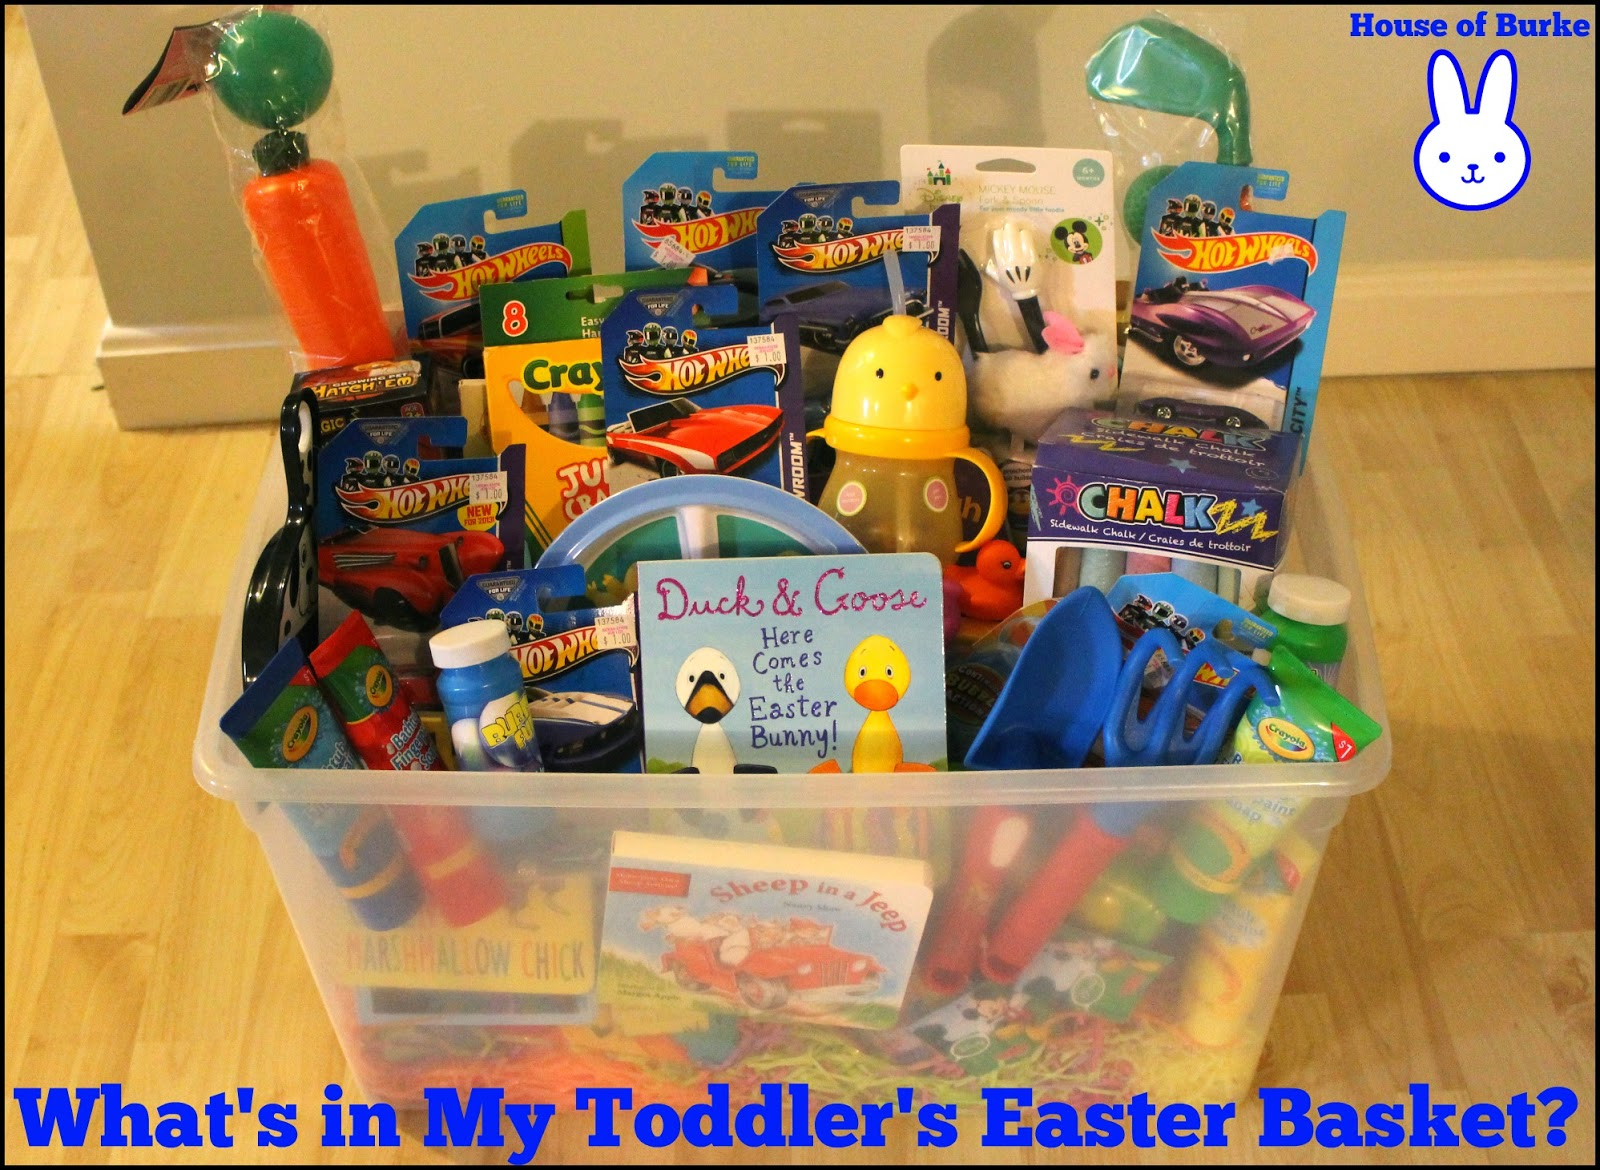 Whats In My Toddlers Easter Basket